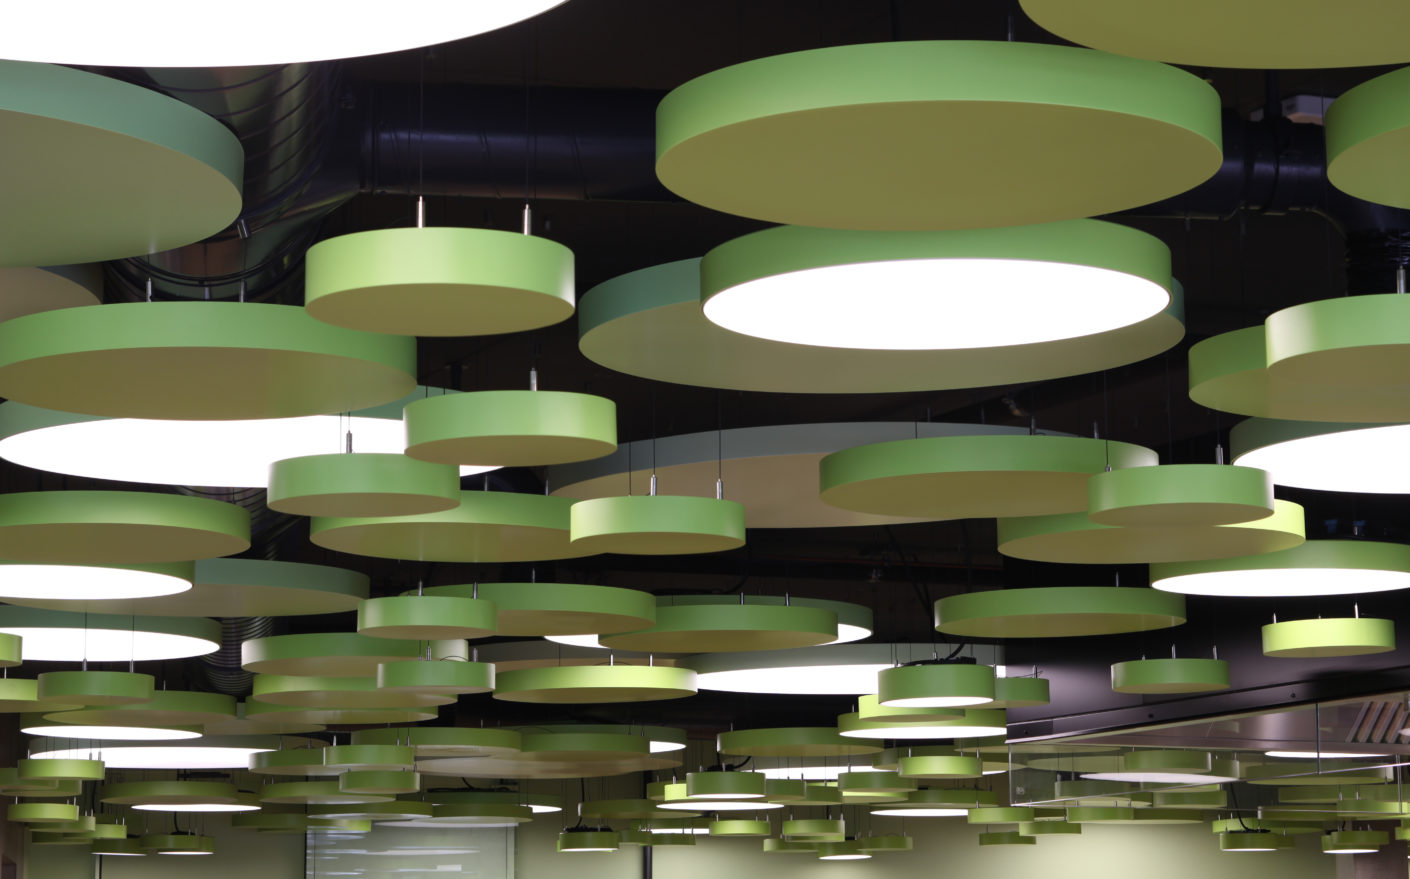 """Round """"Lumeo®-R"""" pendant luminaires were suspended at different heights using metal """"Tomeo®-R"""" elements."""